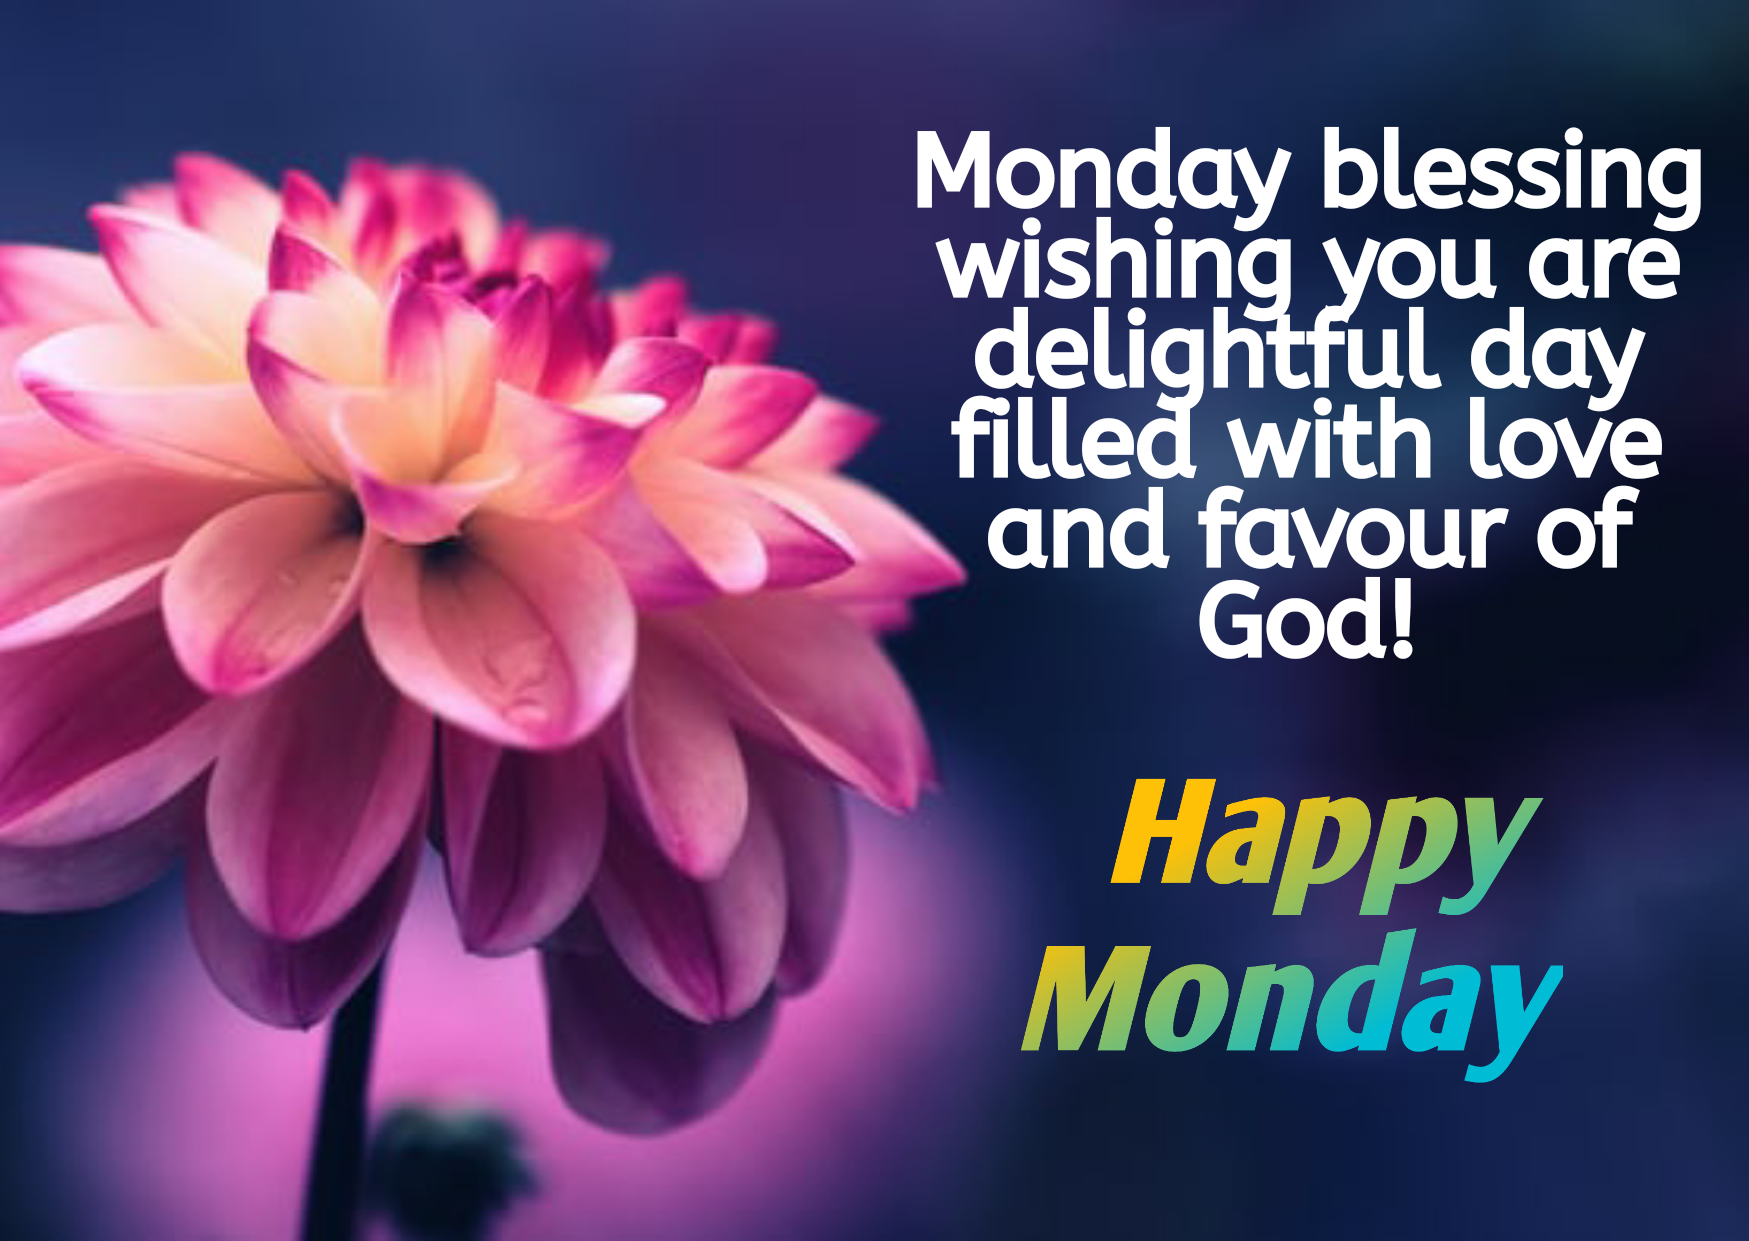 Happy Monday images, wishes, wallpaper, quotes, for whatsapp, Facebook, Pinterest,